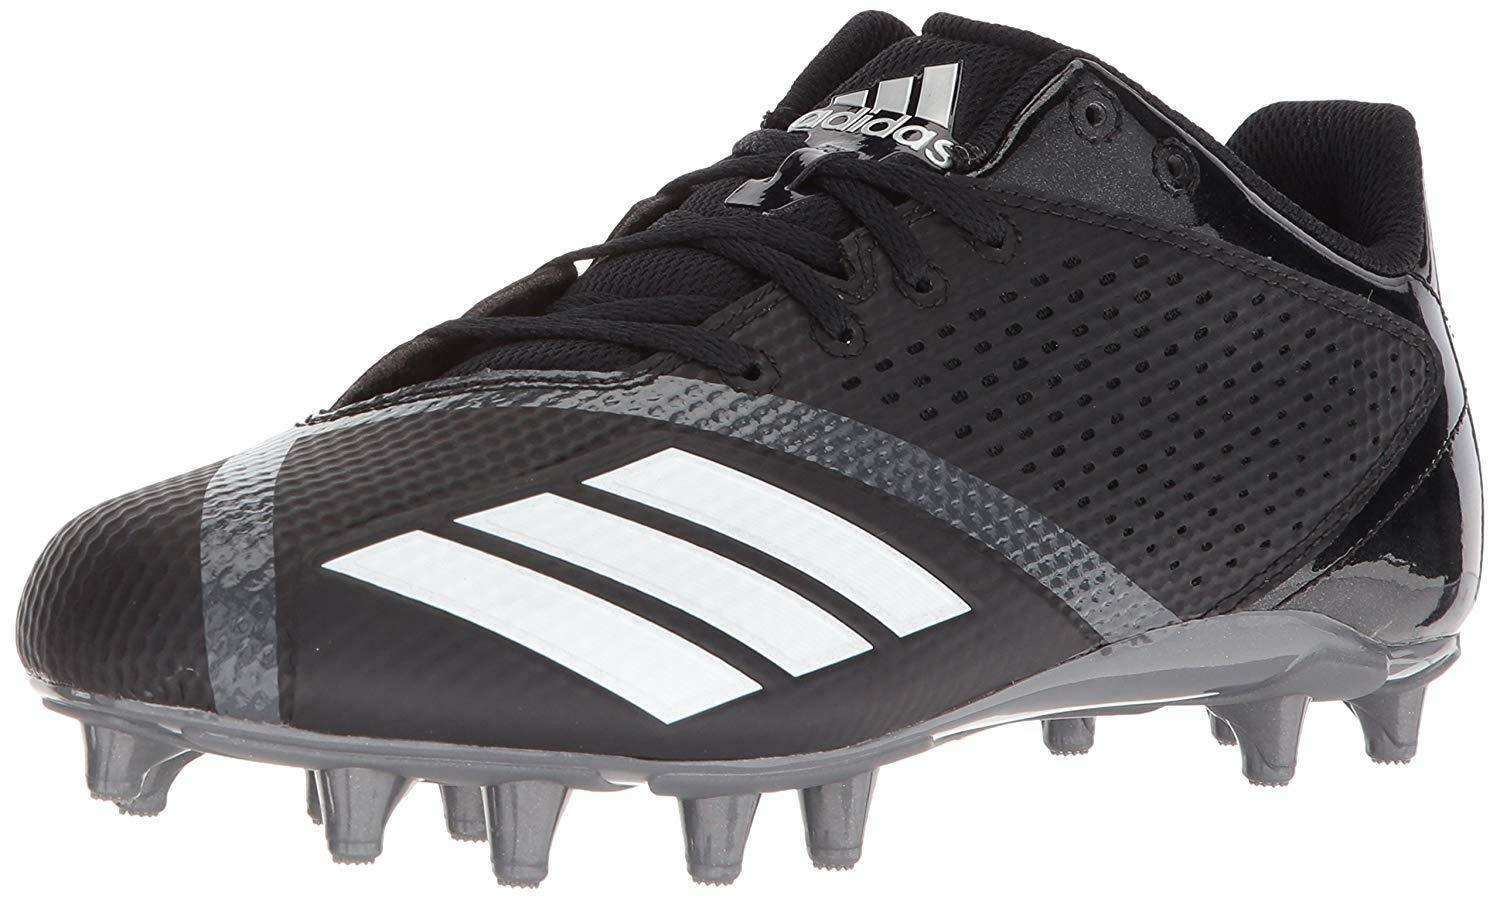 best sneakers e3ad0 572dc Adidas 5.5 shoes Football Star Men's c582dqvuc3821-new shoes